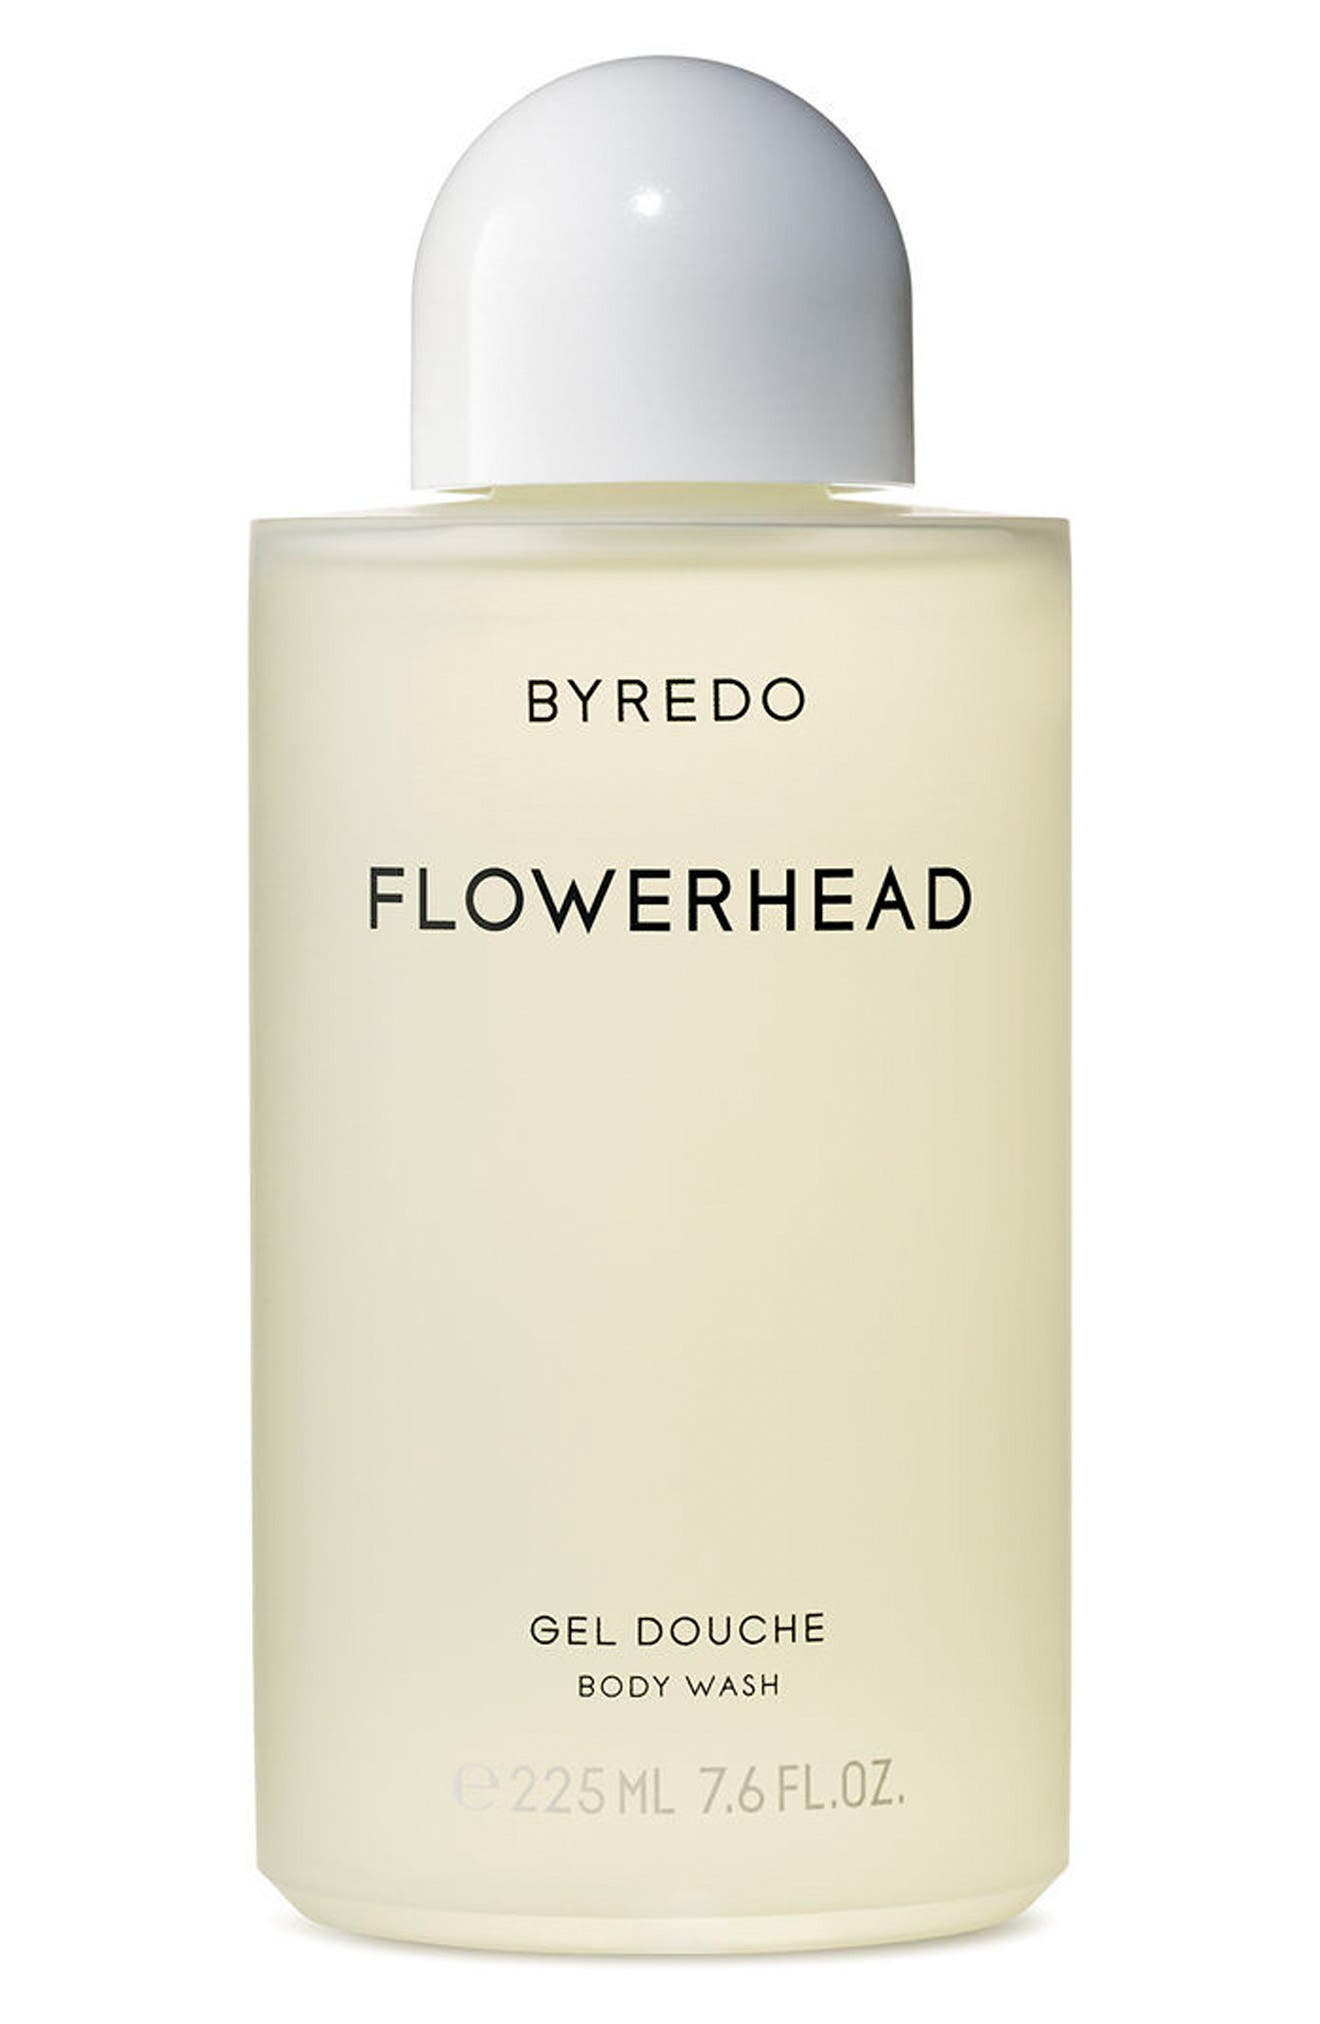 BYREDO Flowerhead Body Wash